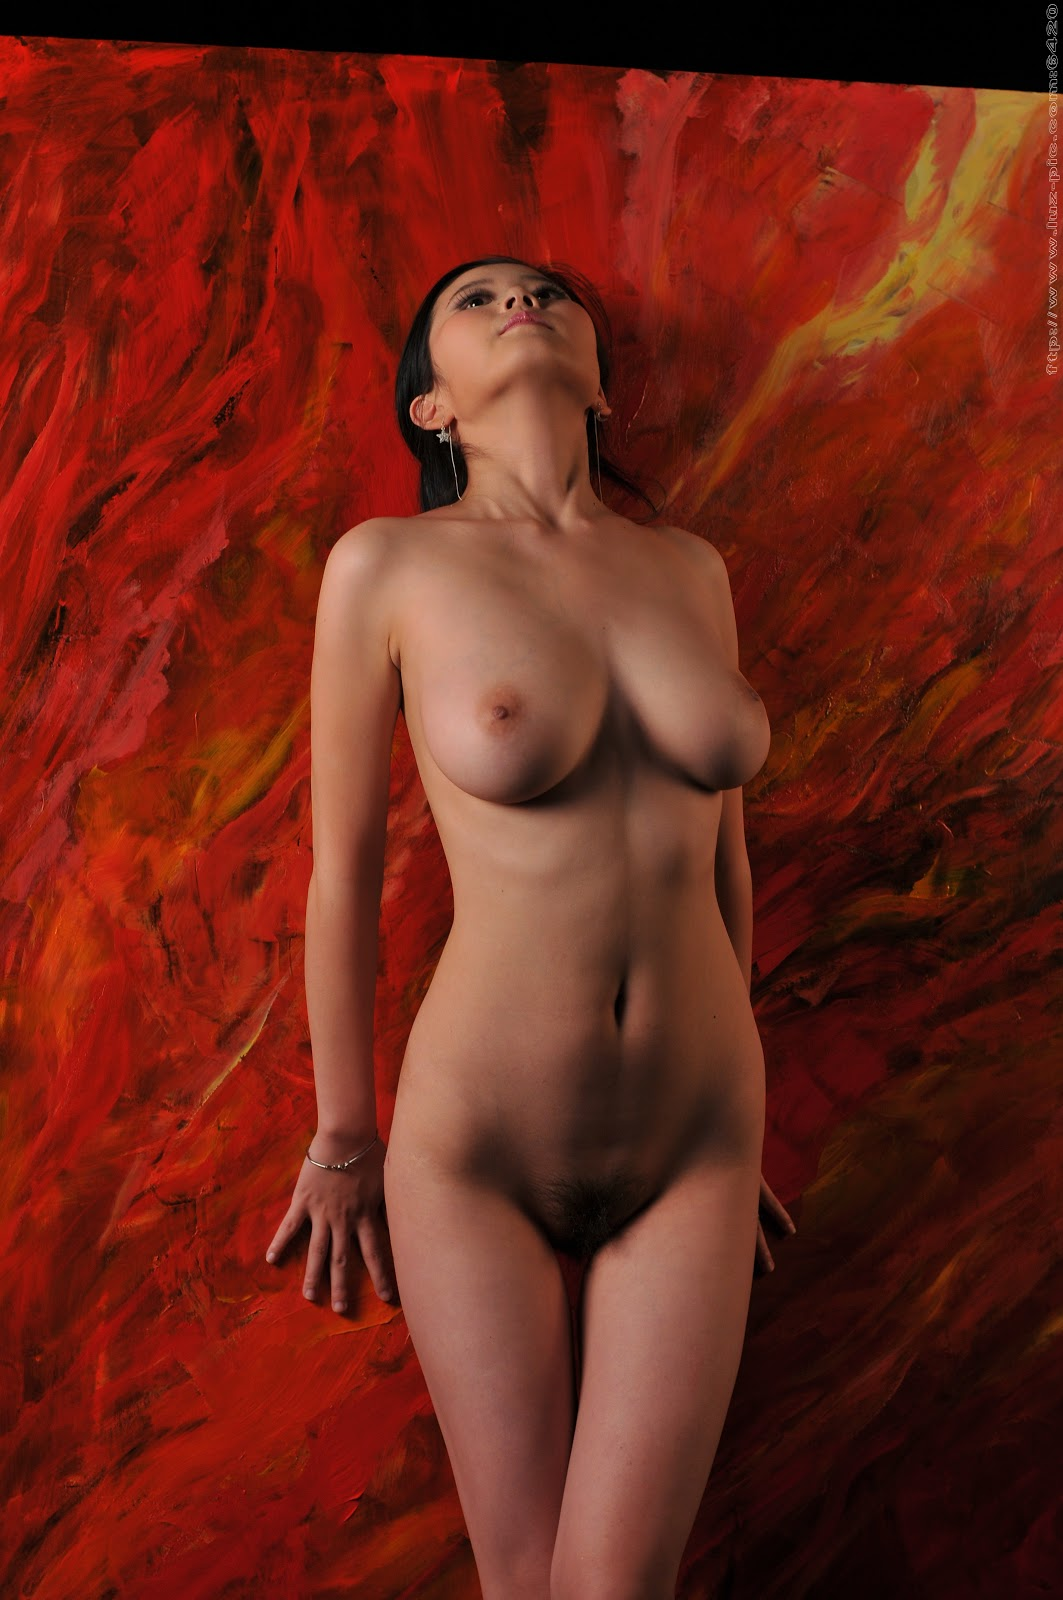 Chinese Nude_Art_Photos_-_296_-_Ytou.rar